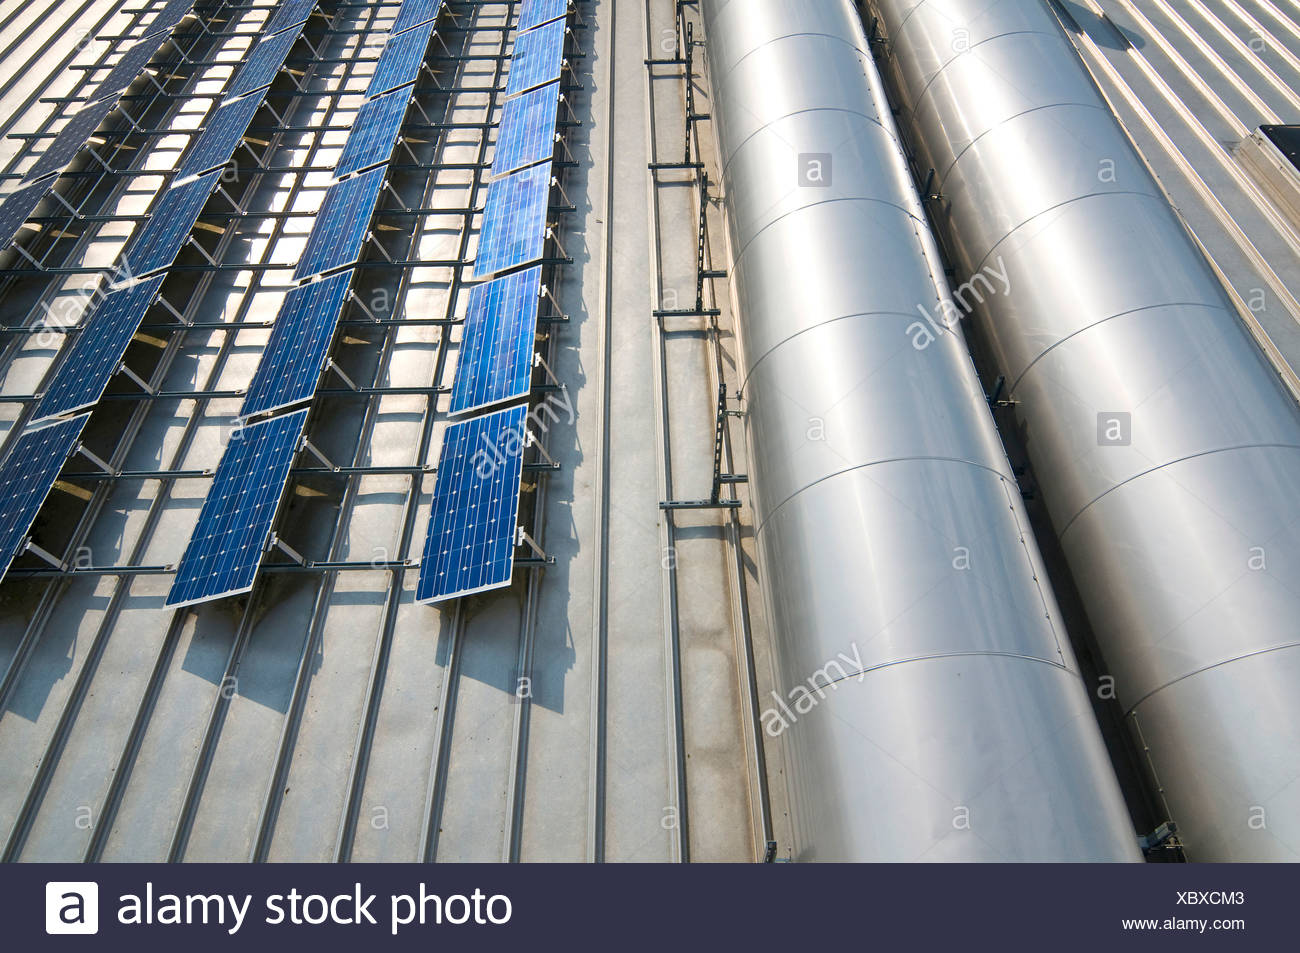 Large solar energy system - Stock Image